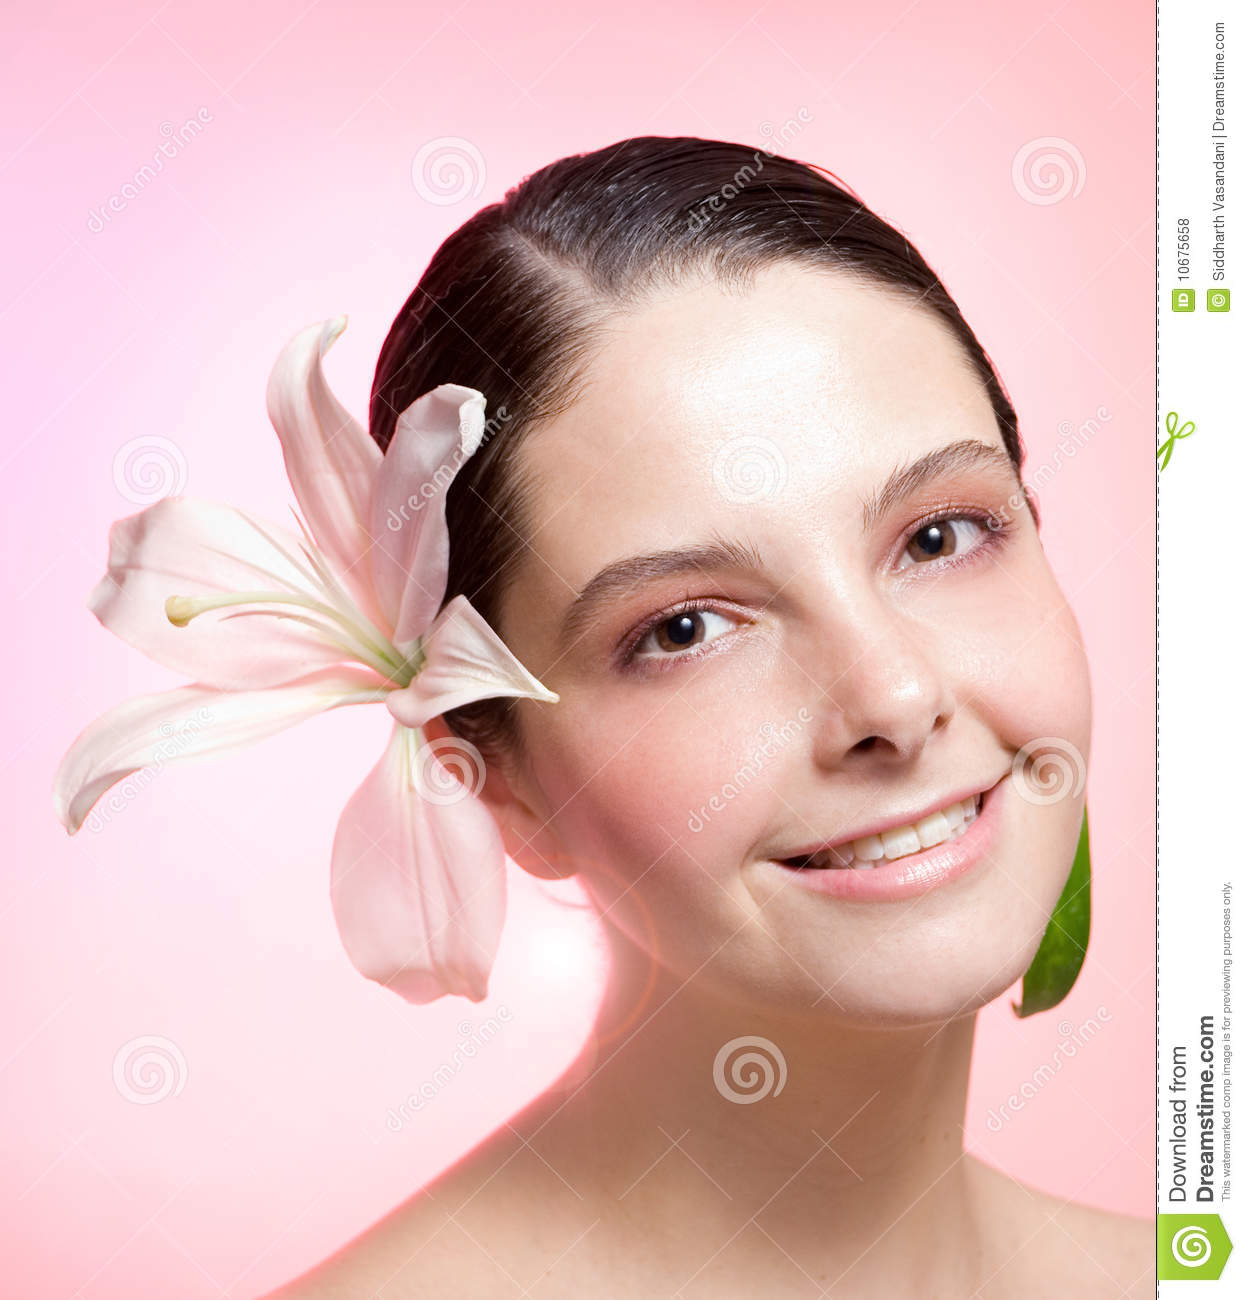 Girl With Pink Flower On Hair Stock Photo Image Of Plant Gladiola